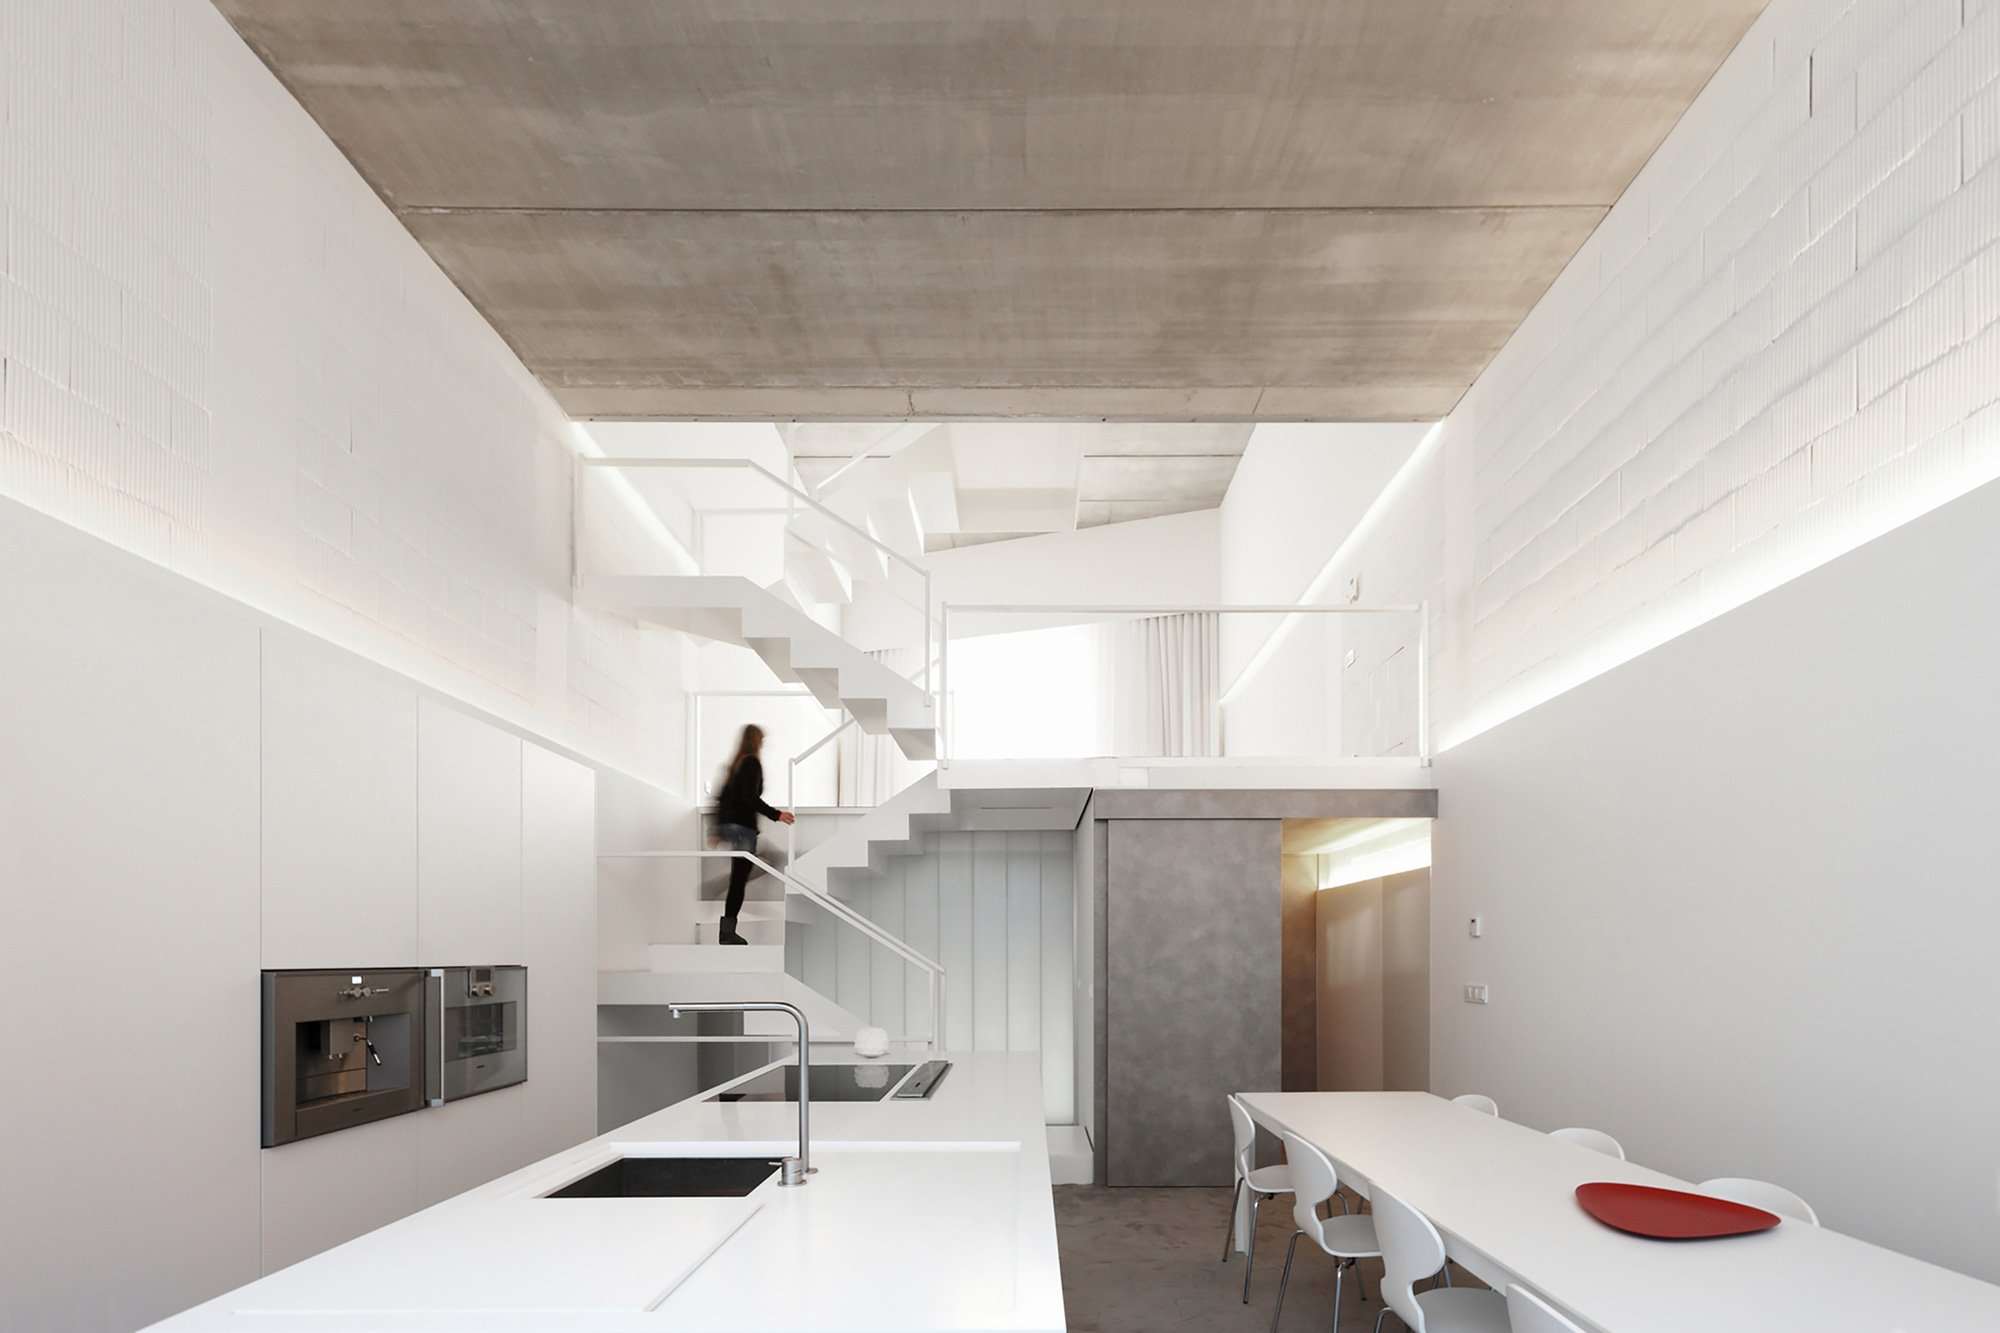 House # 20 / Rue Space (6)